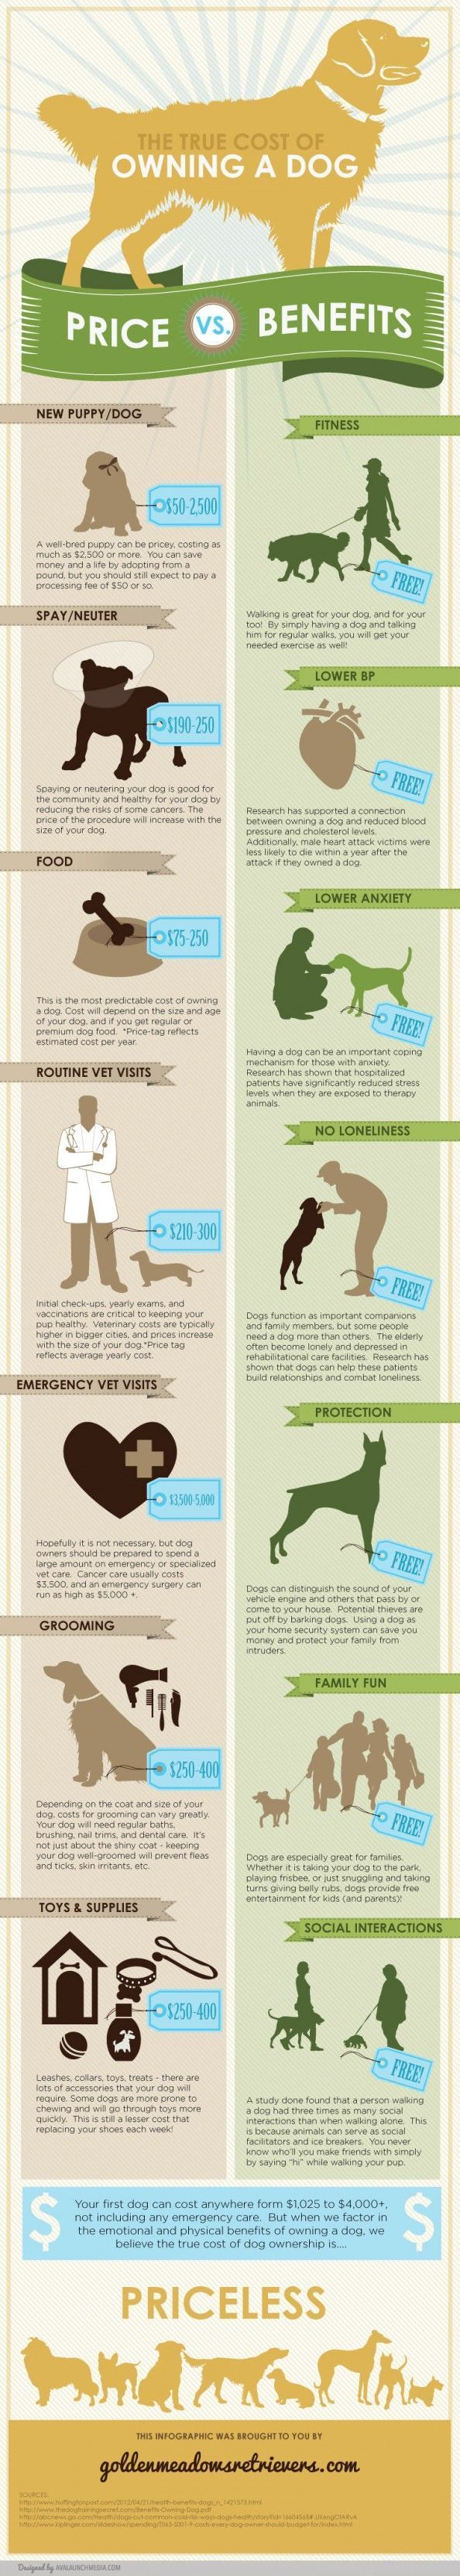 The True Cost of Owning a Dog Infographic | cute puppies and dog training advice by KaufmannsPuppyTraining.com